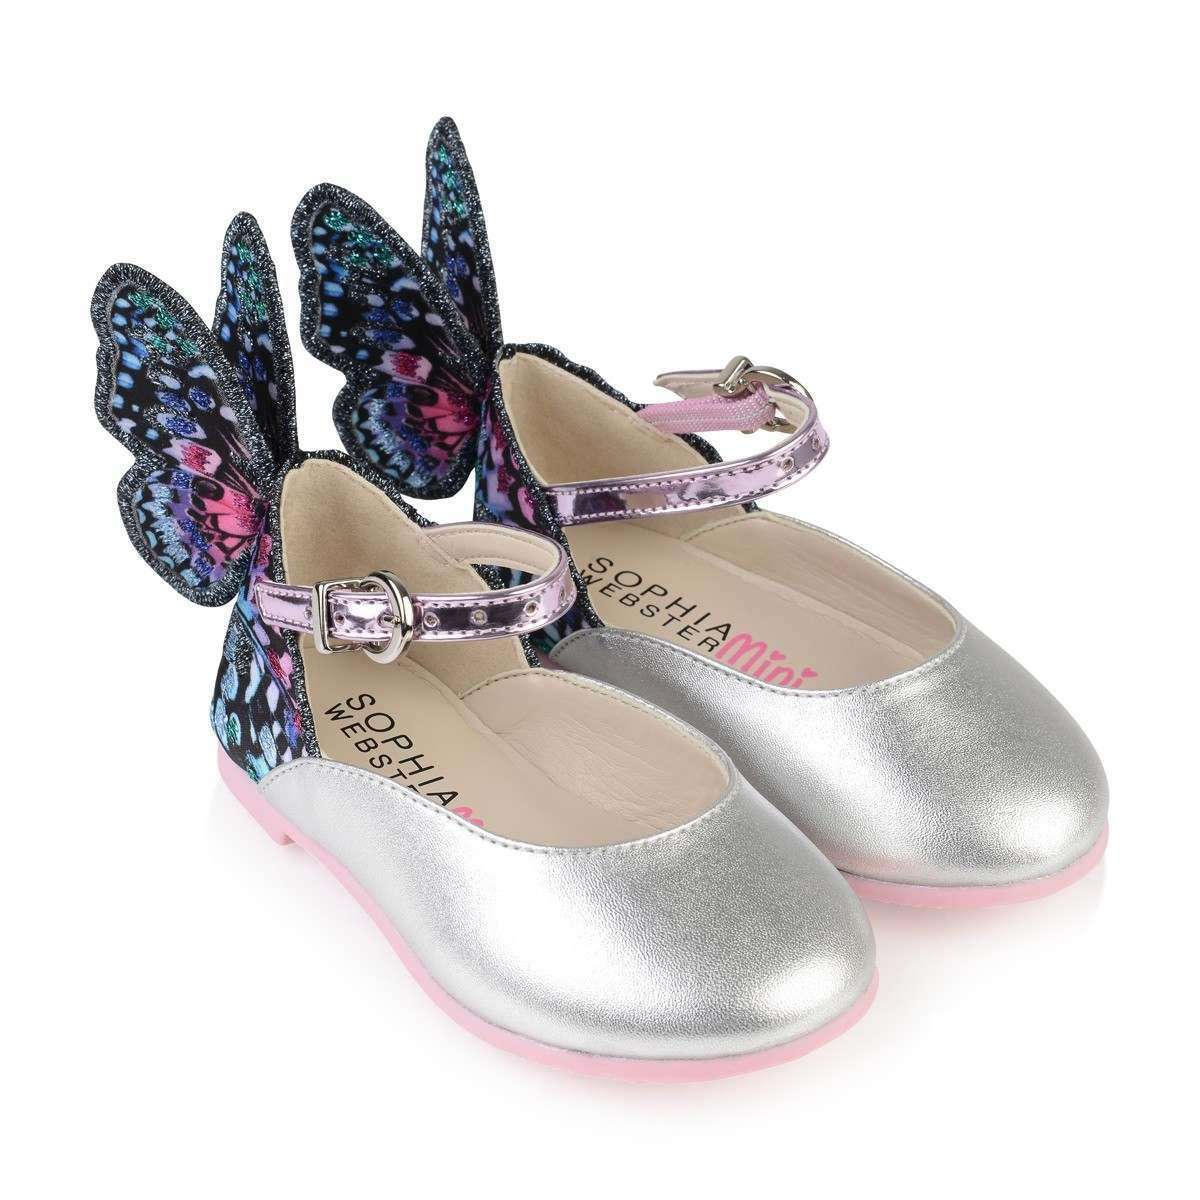 SOPHIA WEBSTER KIDS GIRLS CHIARA EMBROIDERY SHOES EU 28 UK 10